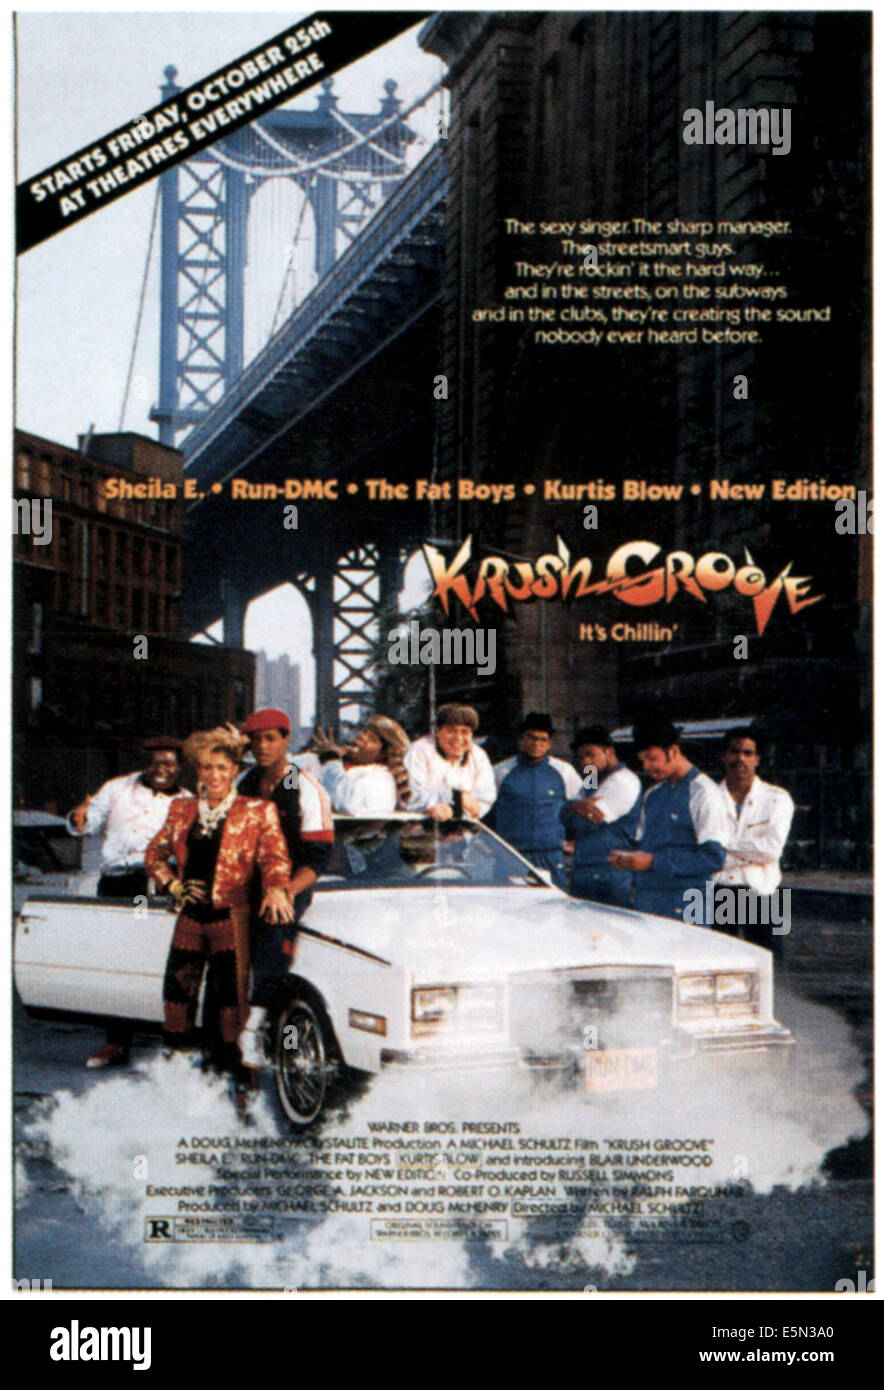 KRUSH GROOVE, from left: Sheila E., Blair Underwood, The Fat Boys, Run DMC, Kurtis Blow, 1985, ©Warner Bros. - Stock Image